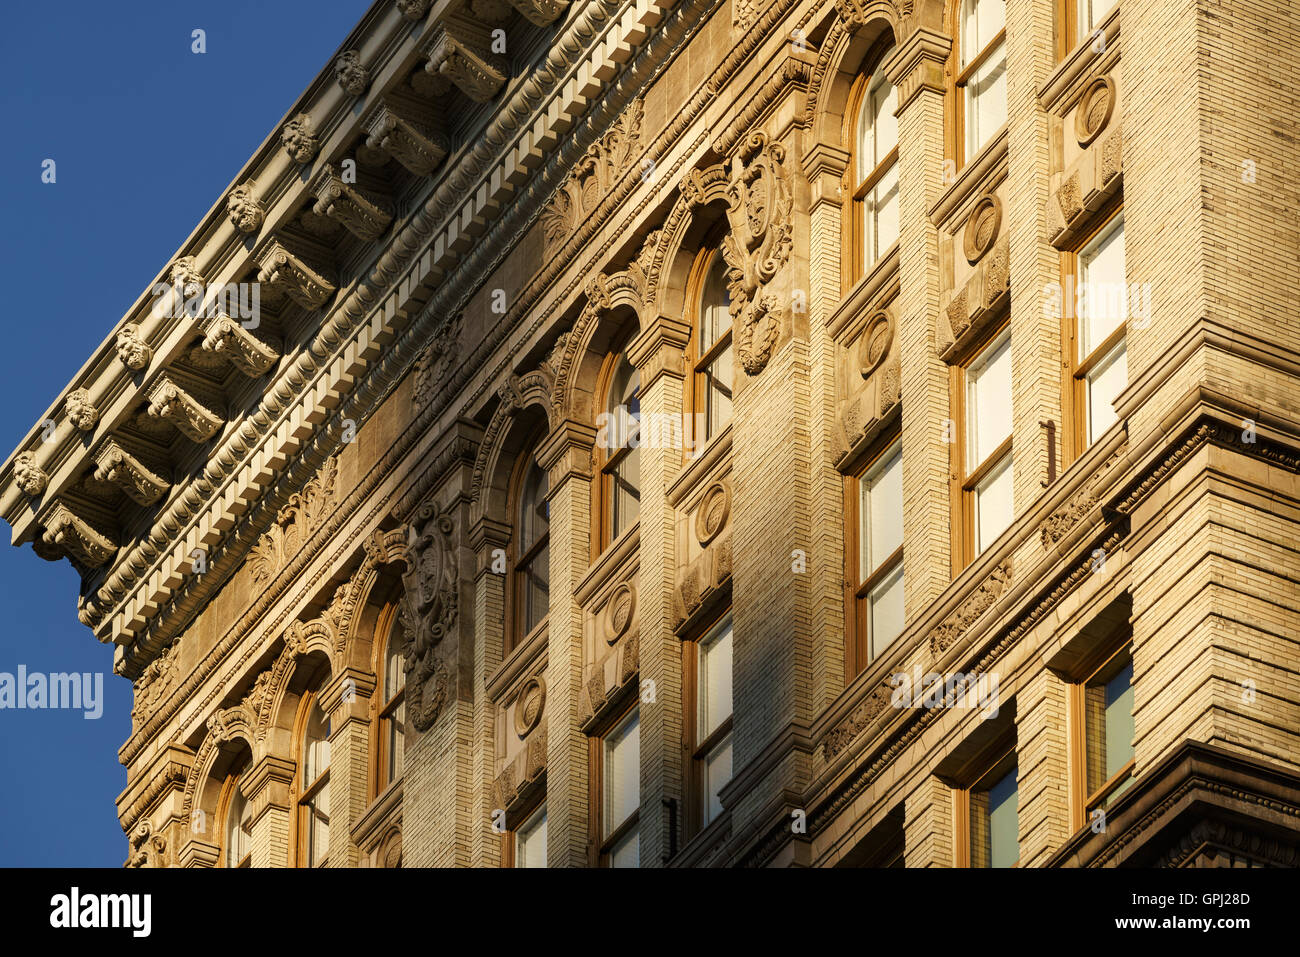 Soho brick building facades and cornices with terracotta architectural ornaments. Manhattan, New York City - Stock Image